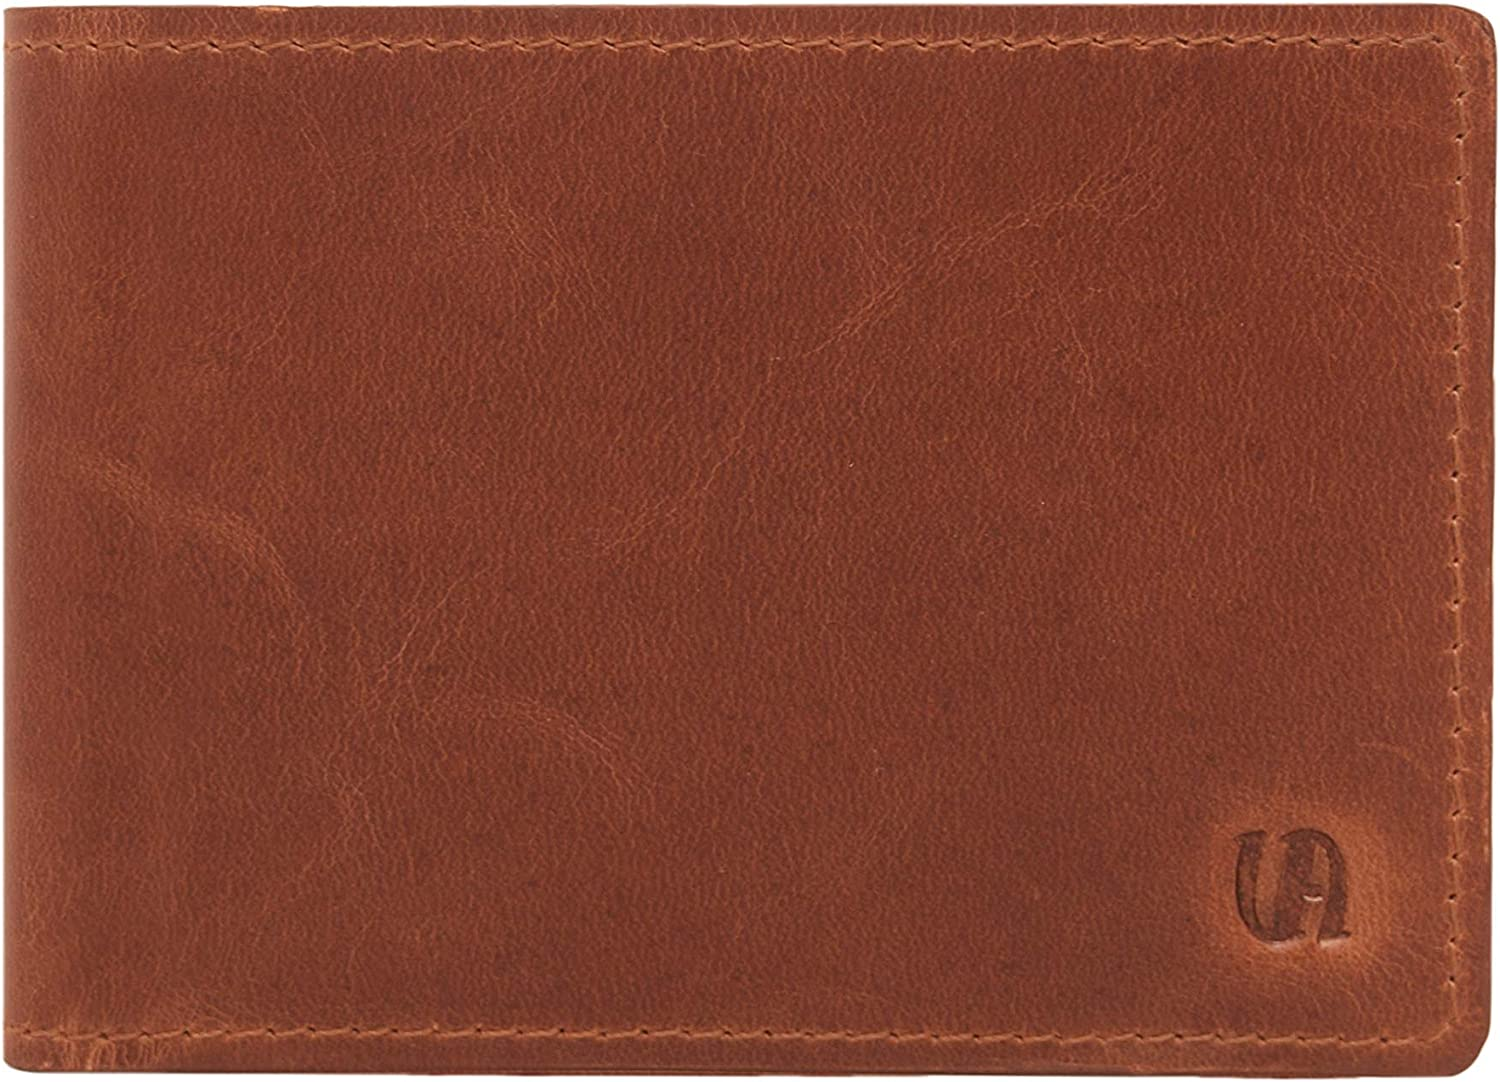 Men's Vintage Leather Slim Unlined Bill Fold Wallet with RFID Protection 3.2 x 4.2 inches Cognac V-élan